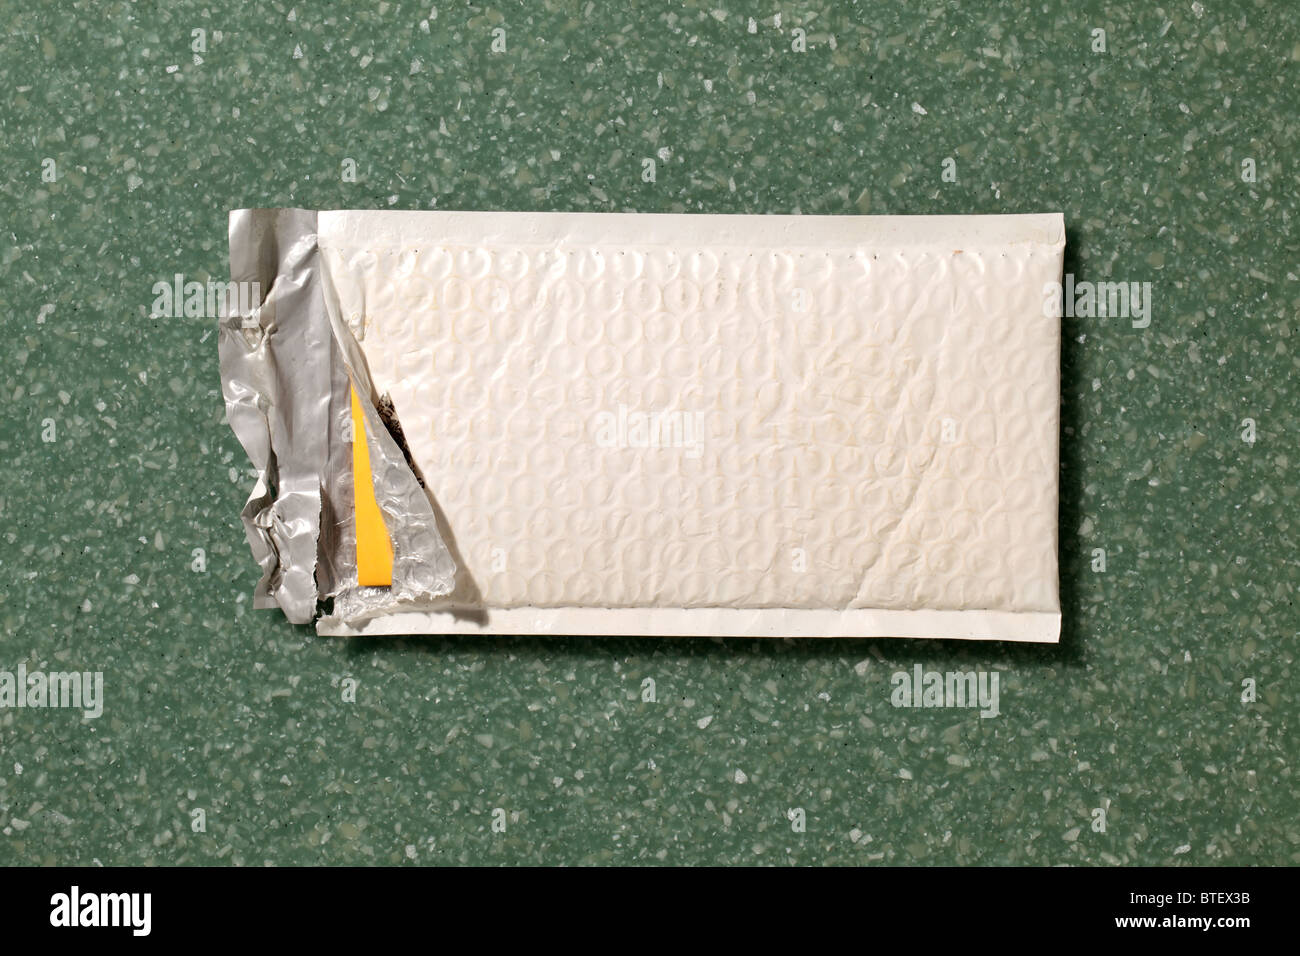 A used postal mailing envelope torn open. Green speckled counter top background - Stock Image